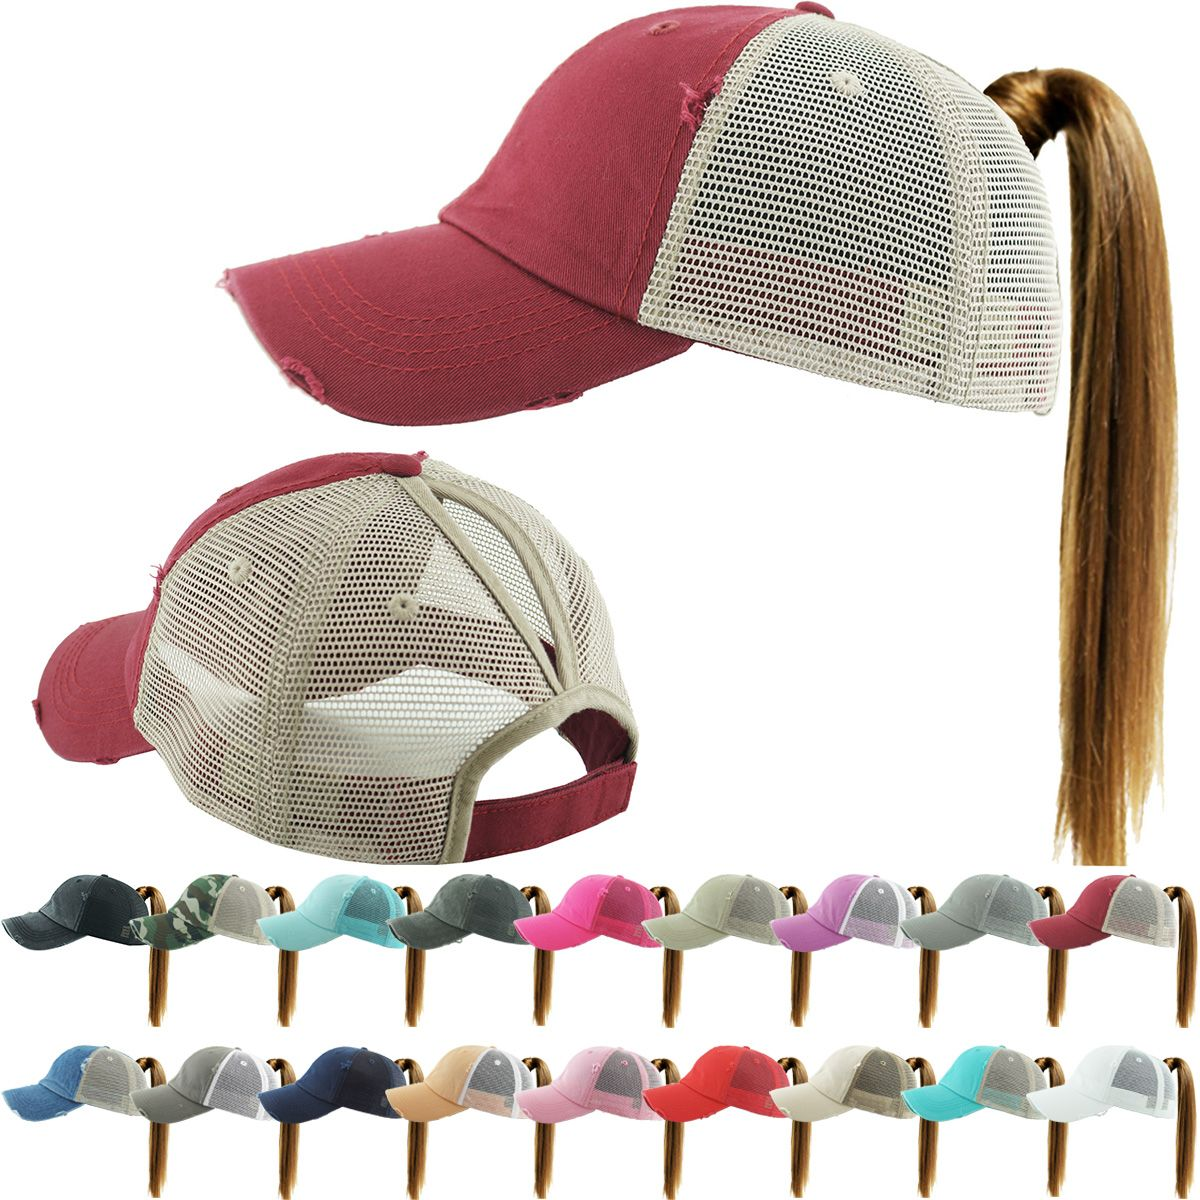 1c51ad692c1 Washed Cotton and Mesh Ponytail Trucker Baseball Hat available in 15 colors